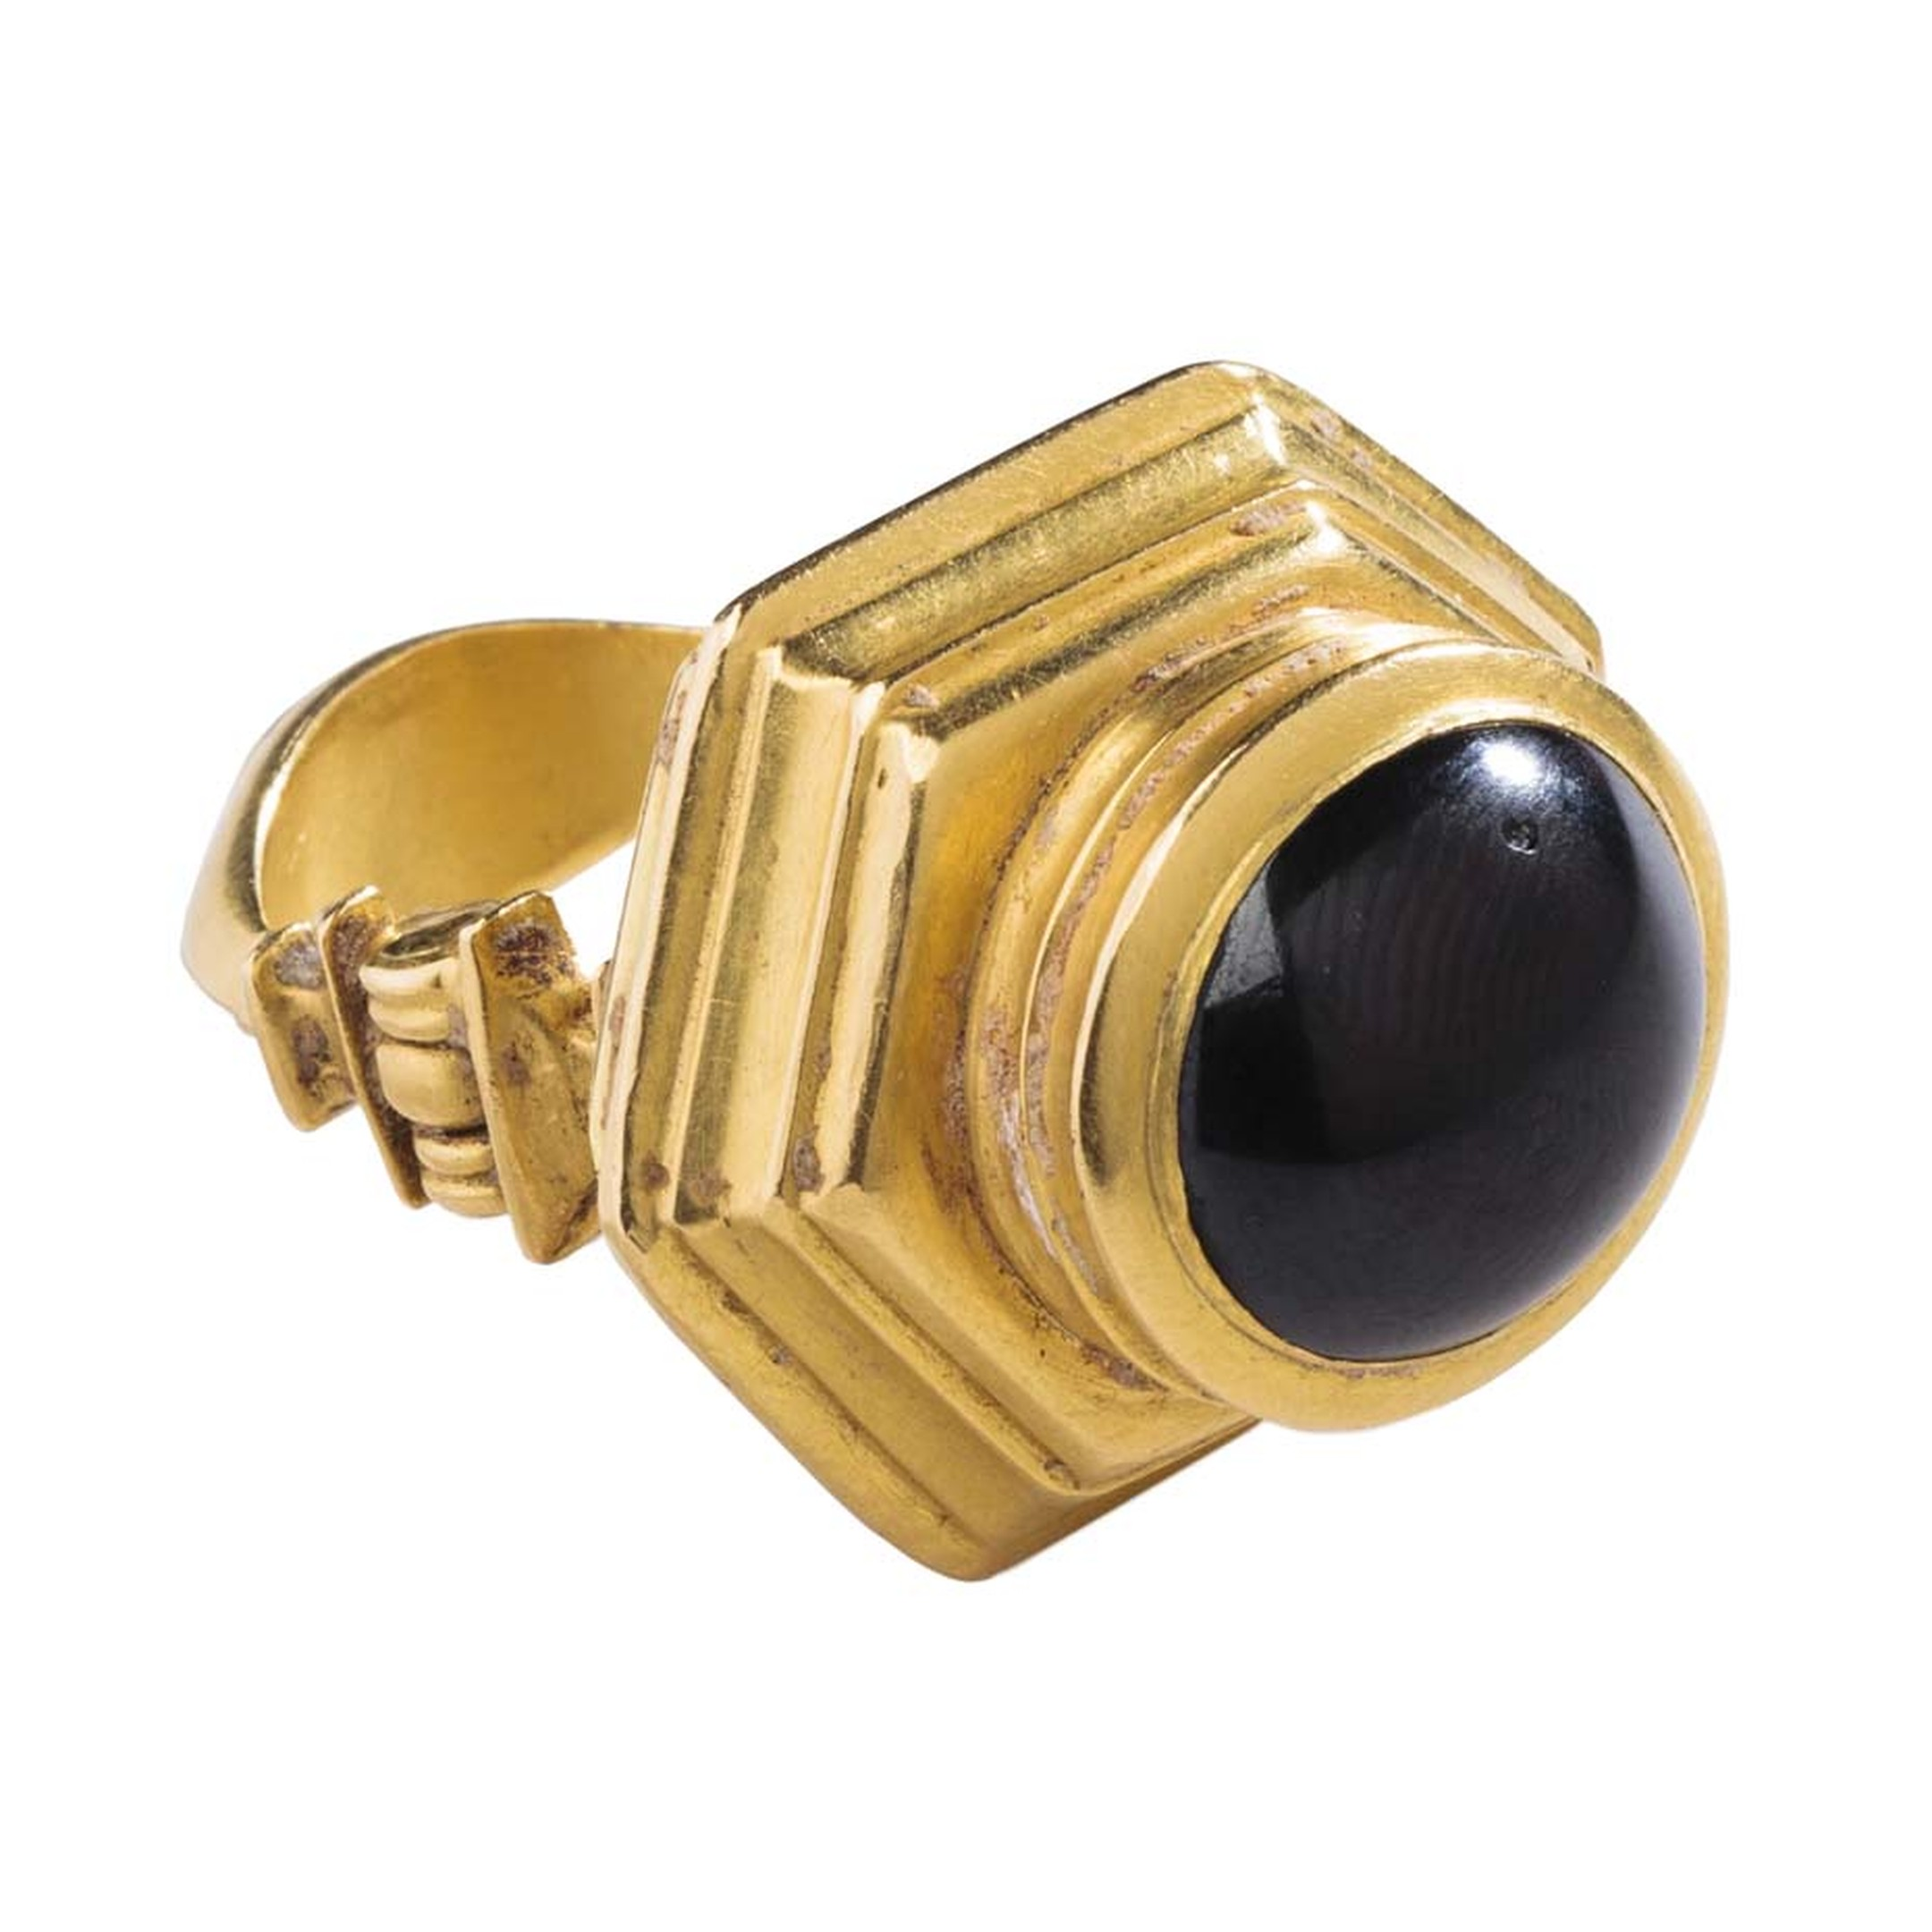 This gold ring with a large cabochon garnet, known as the Hellenistic Garnet ring, is thought to date from the 2nd century BC and is one of around 250 rings that make up the Griffin Collection.